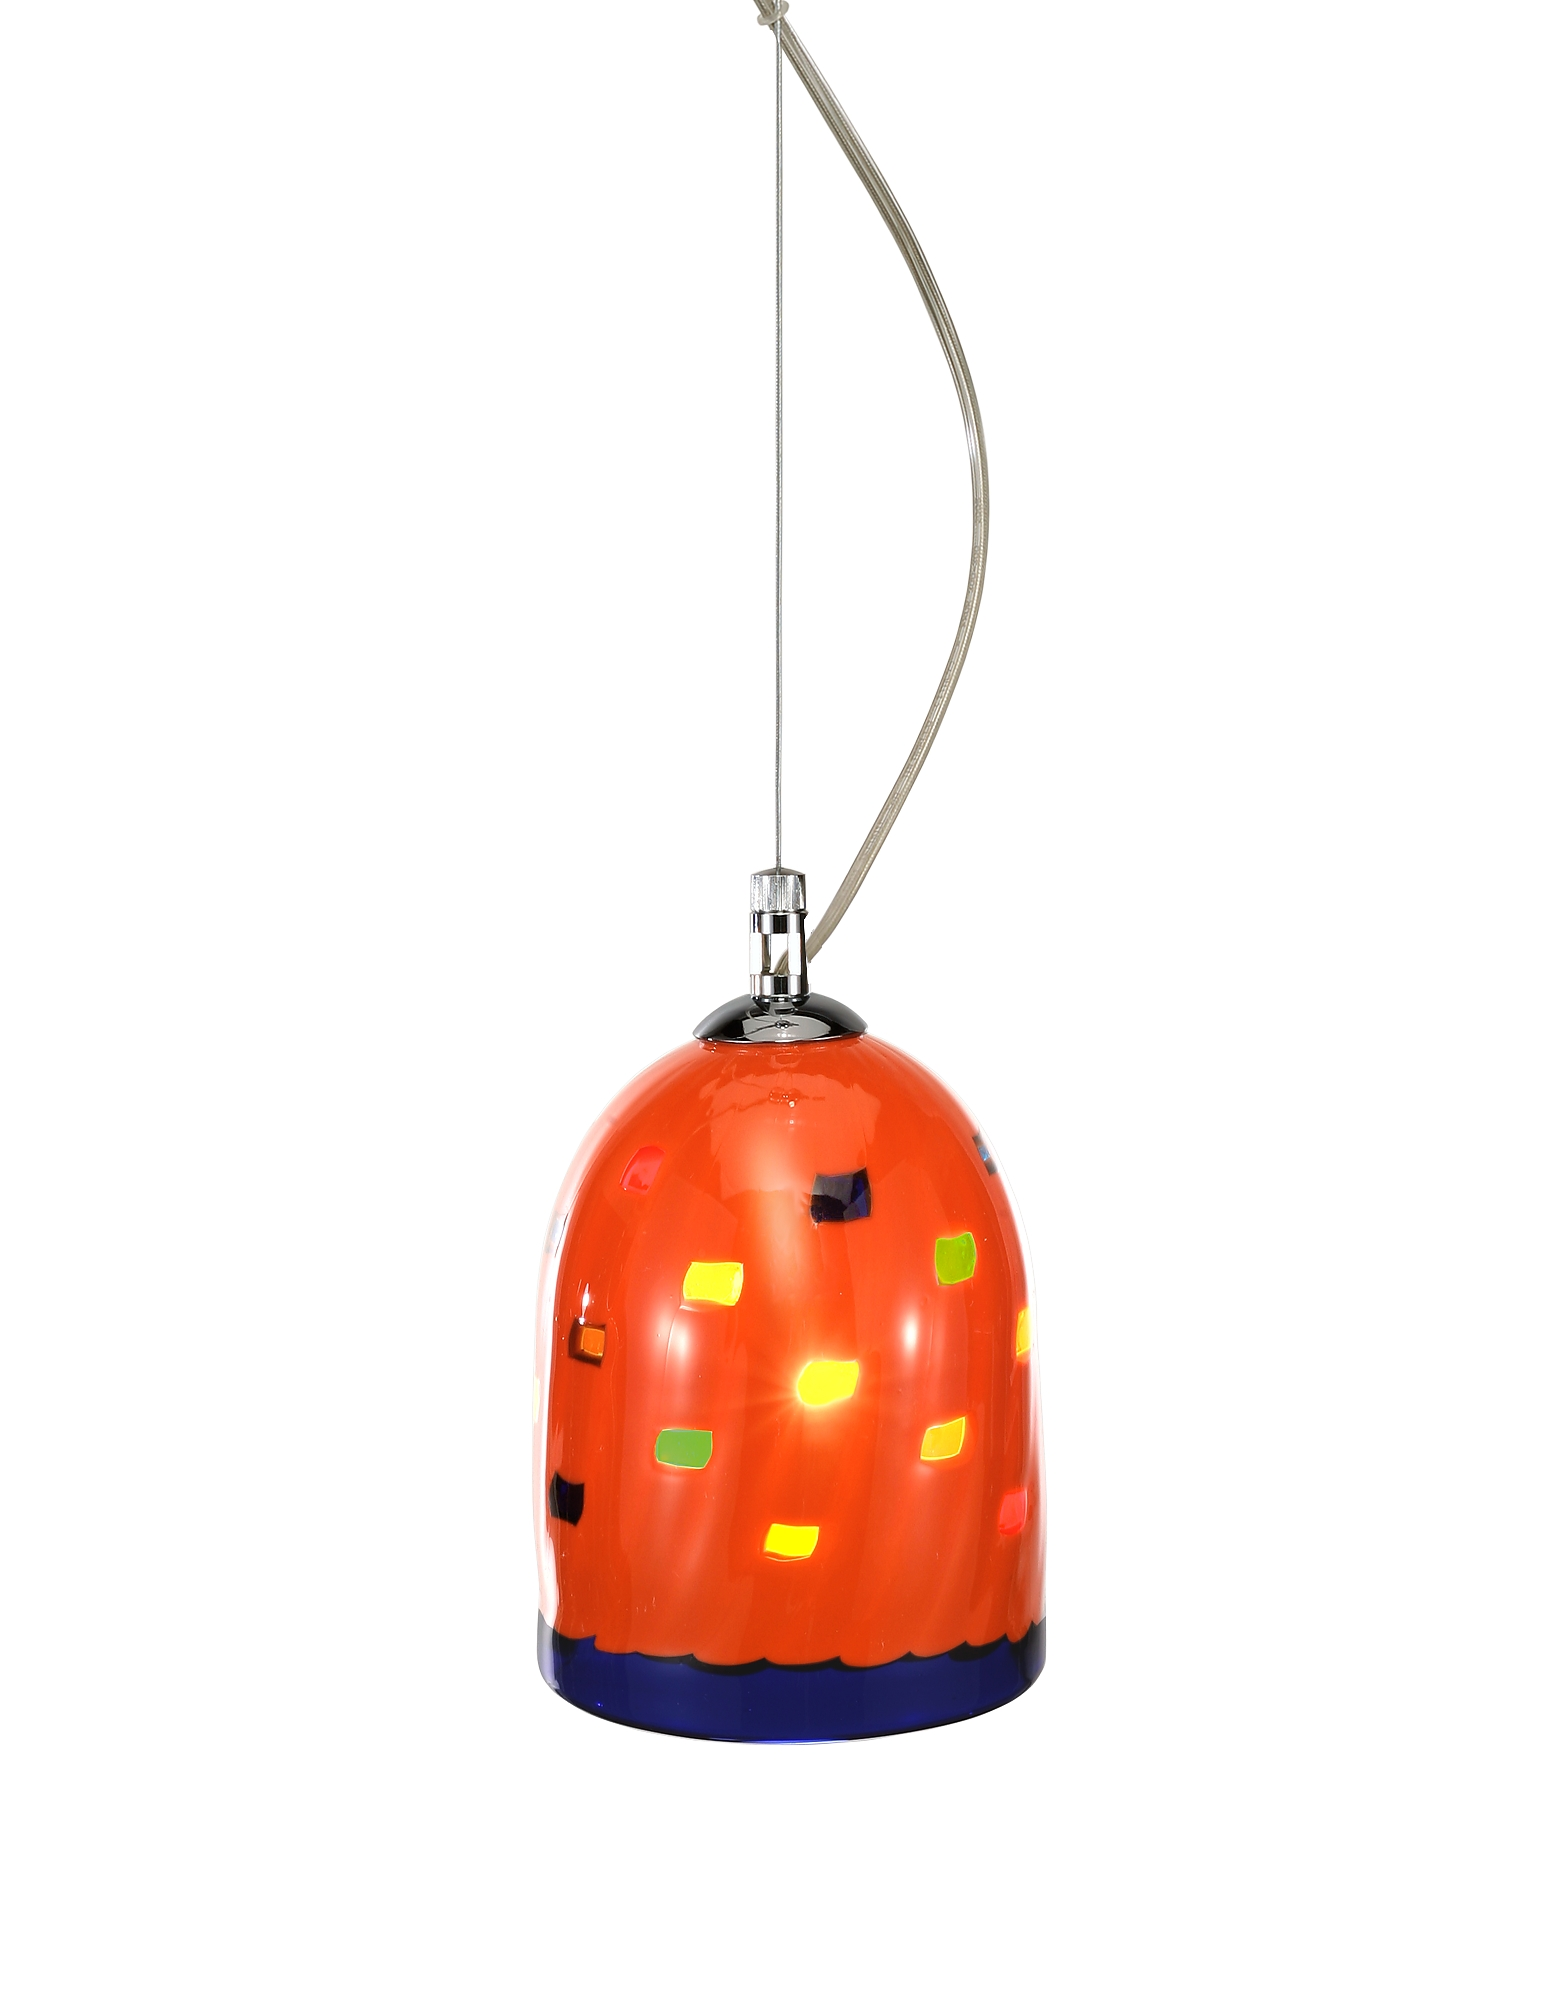 Voltolina Designer Decor & Lighting, Mega Rancio - Orange Murano Handmade Glass Pendant Lamp